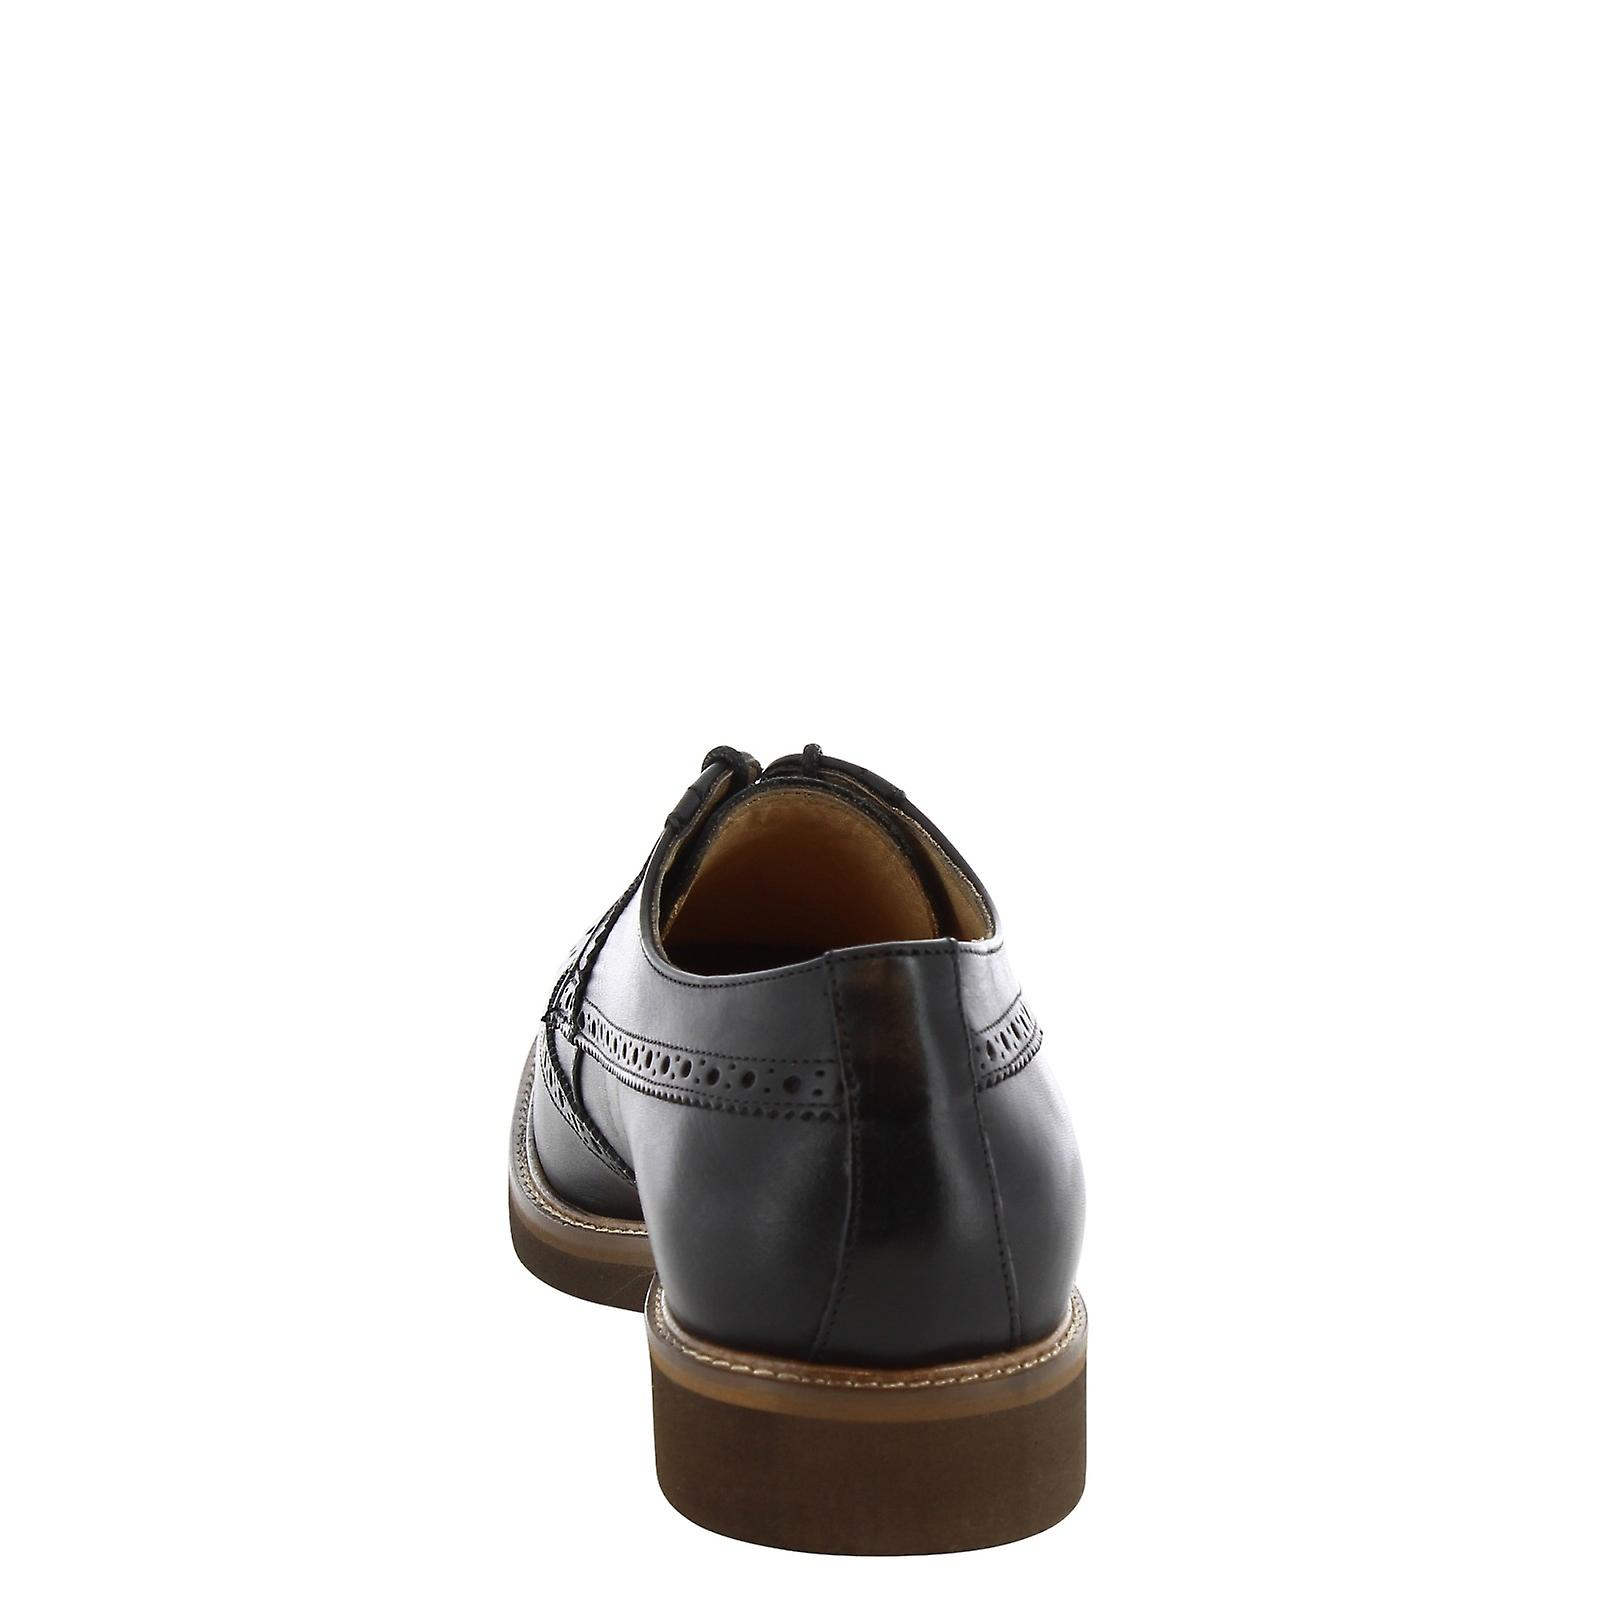 Leonardo Shoes Man's handmade derbies lace ups with brogues in black leather